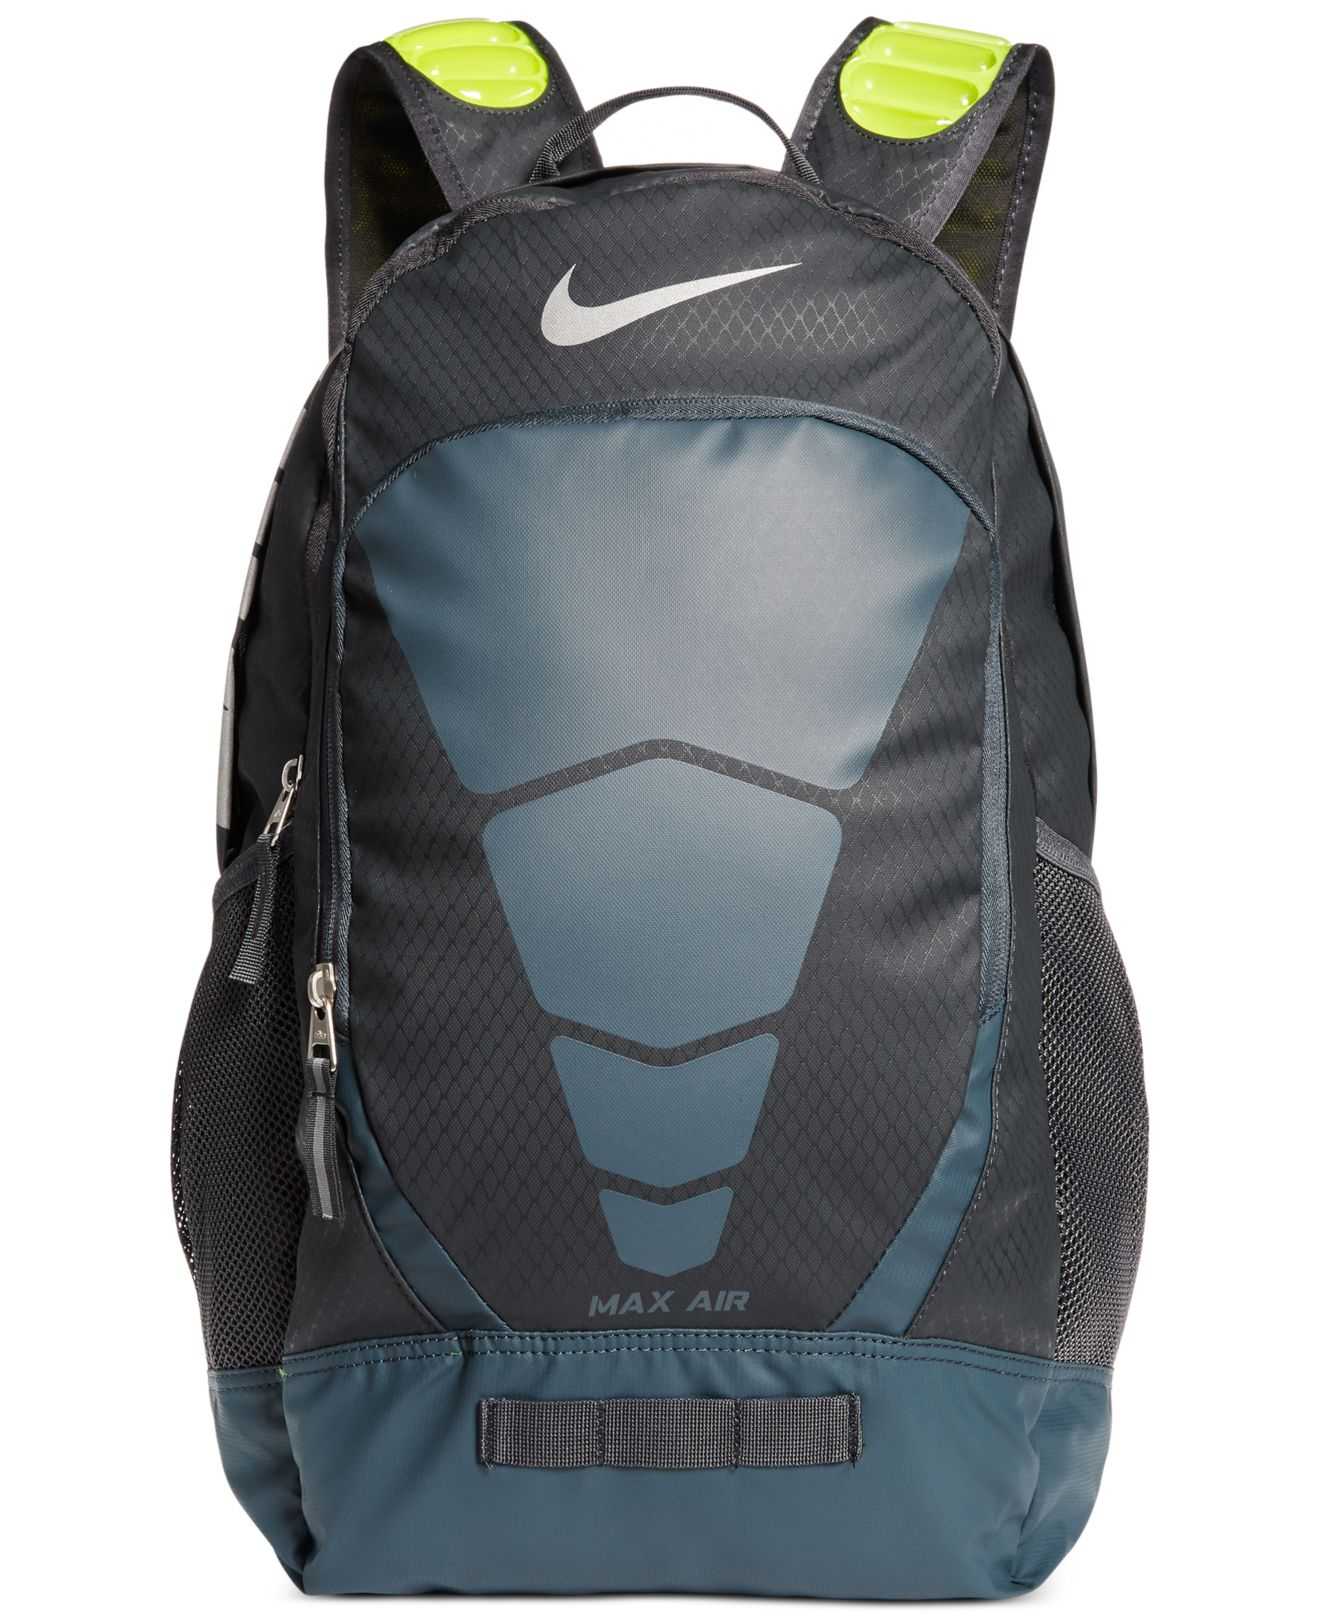 87e75aab0b08 Nike Air Max Vapor Backpack Red- Fenix Toulouse Handball